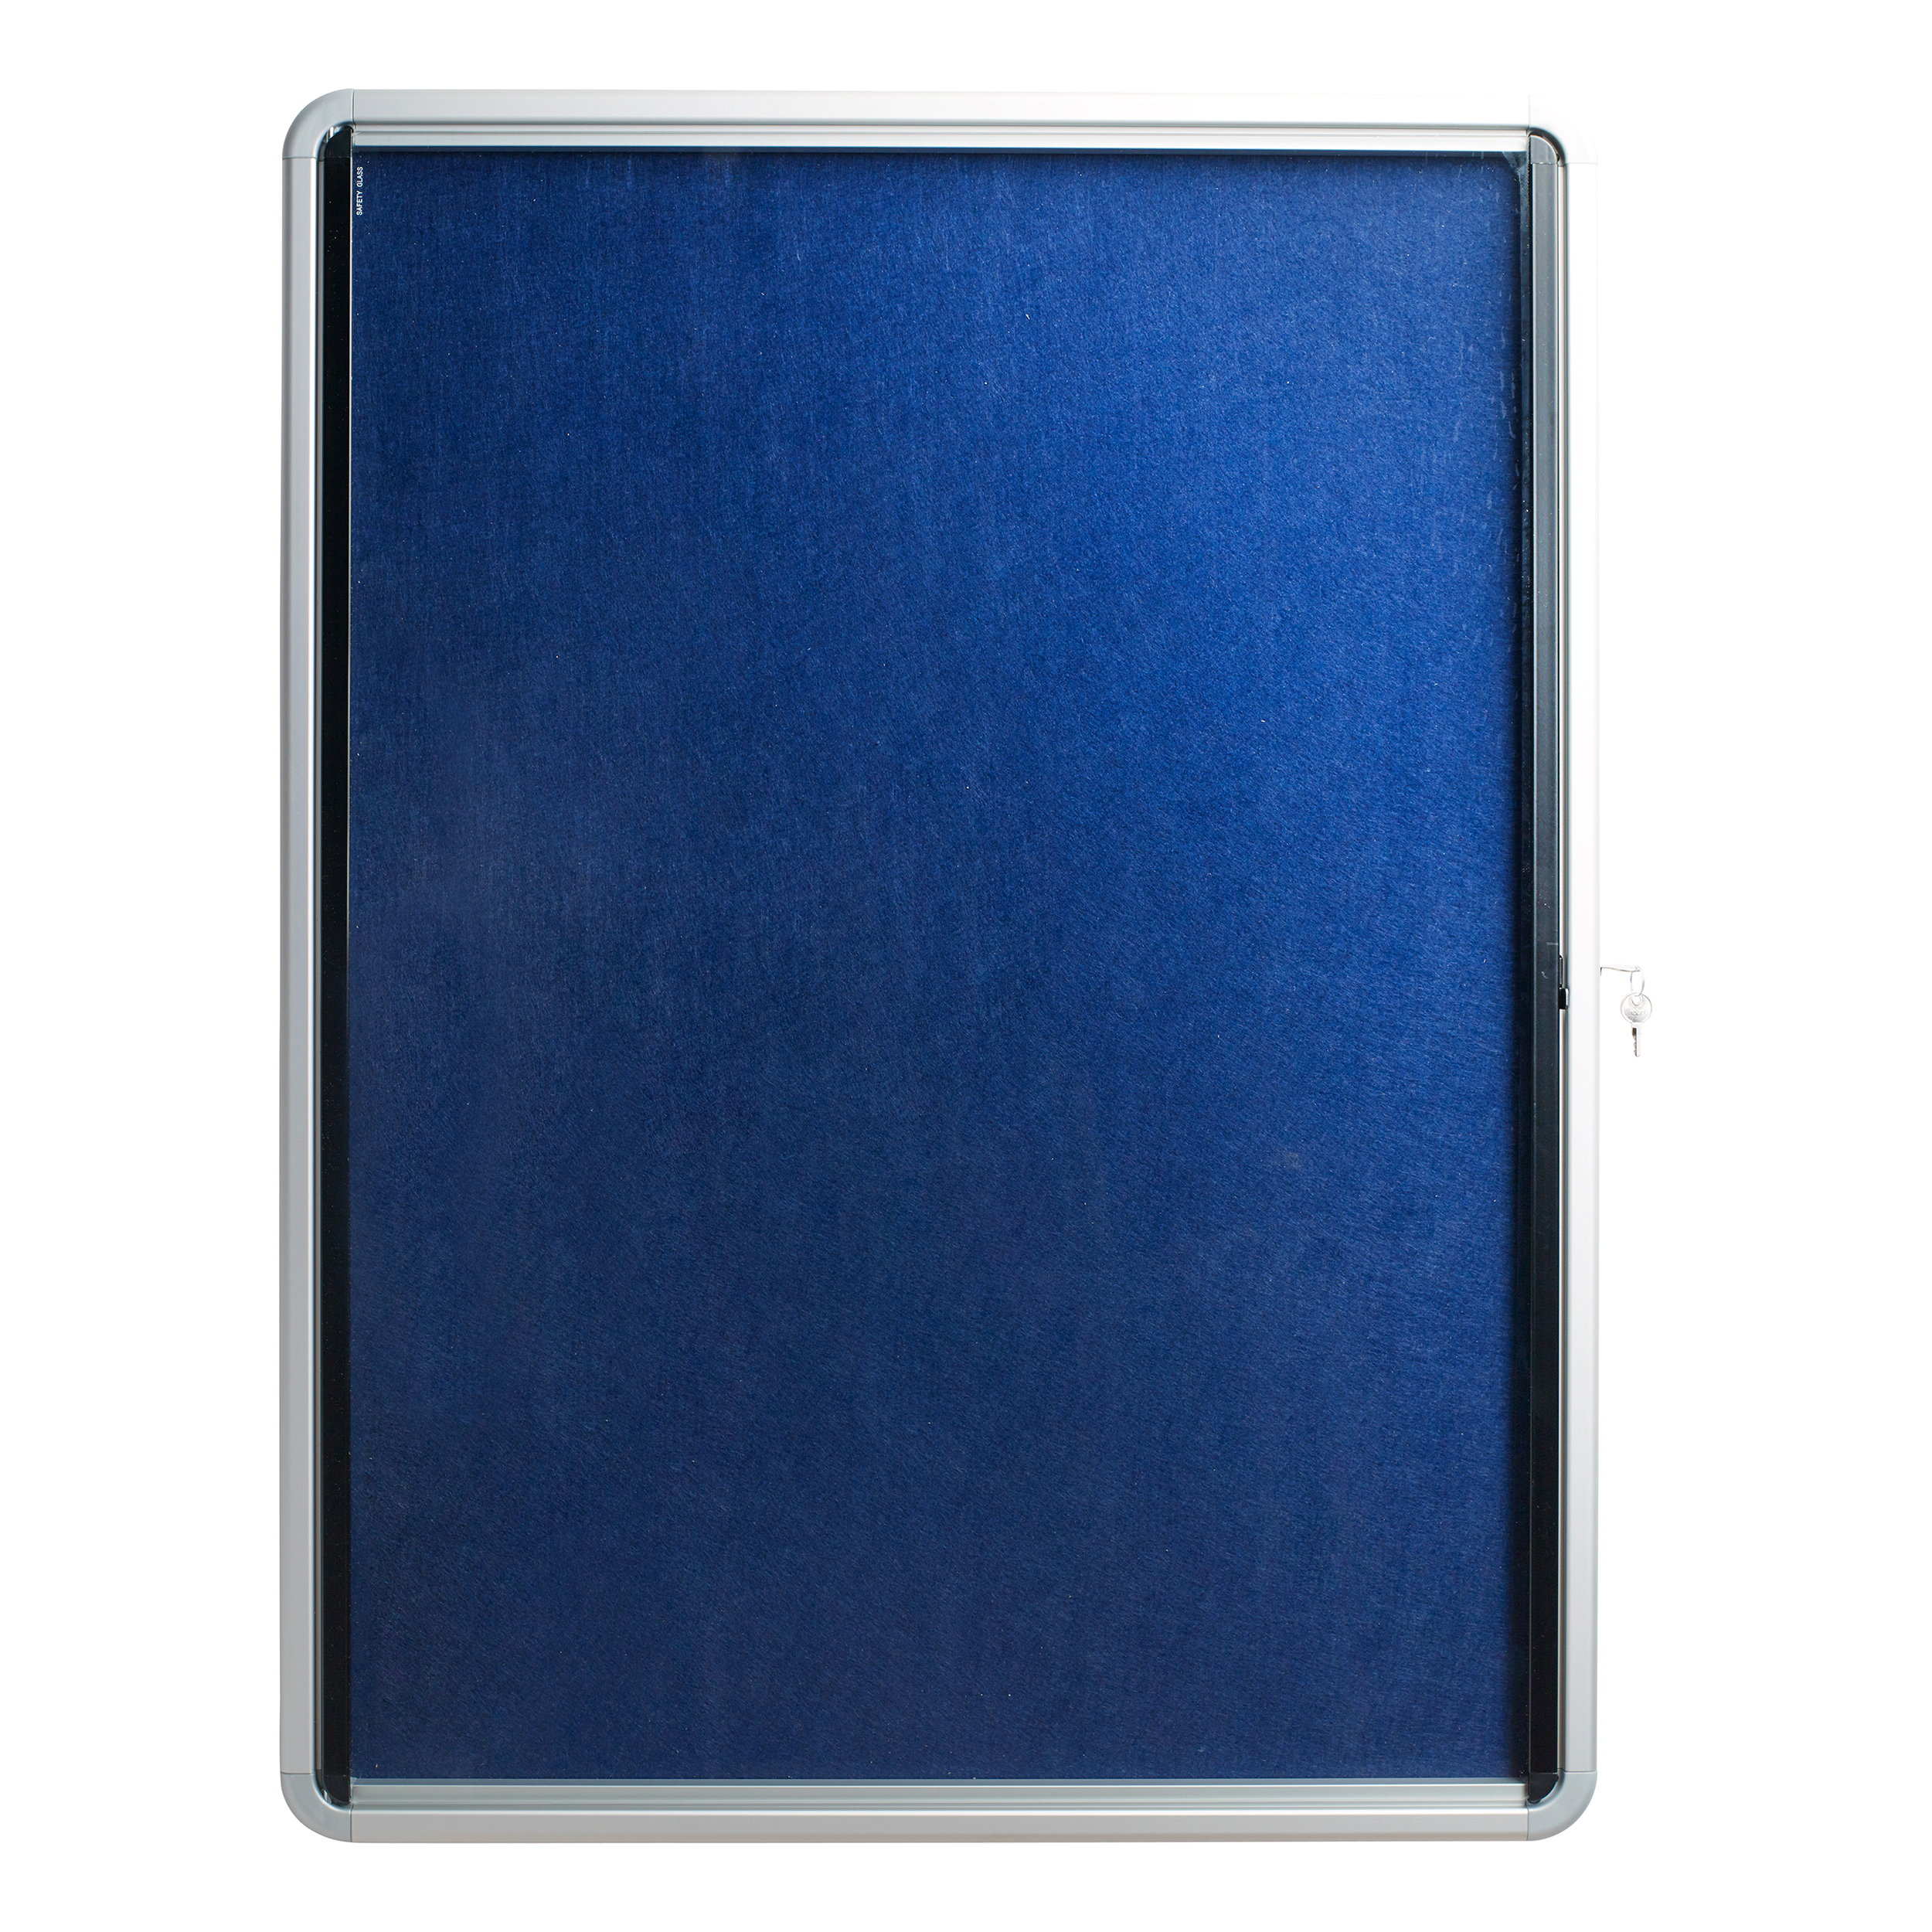 Display cases 5 Star Glazed Noticeboard with Hinged Door Locking Alumin Frame Blue Felt 750x10000mm